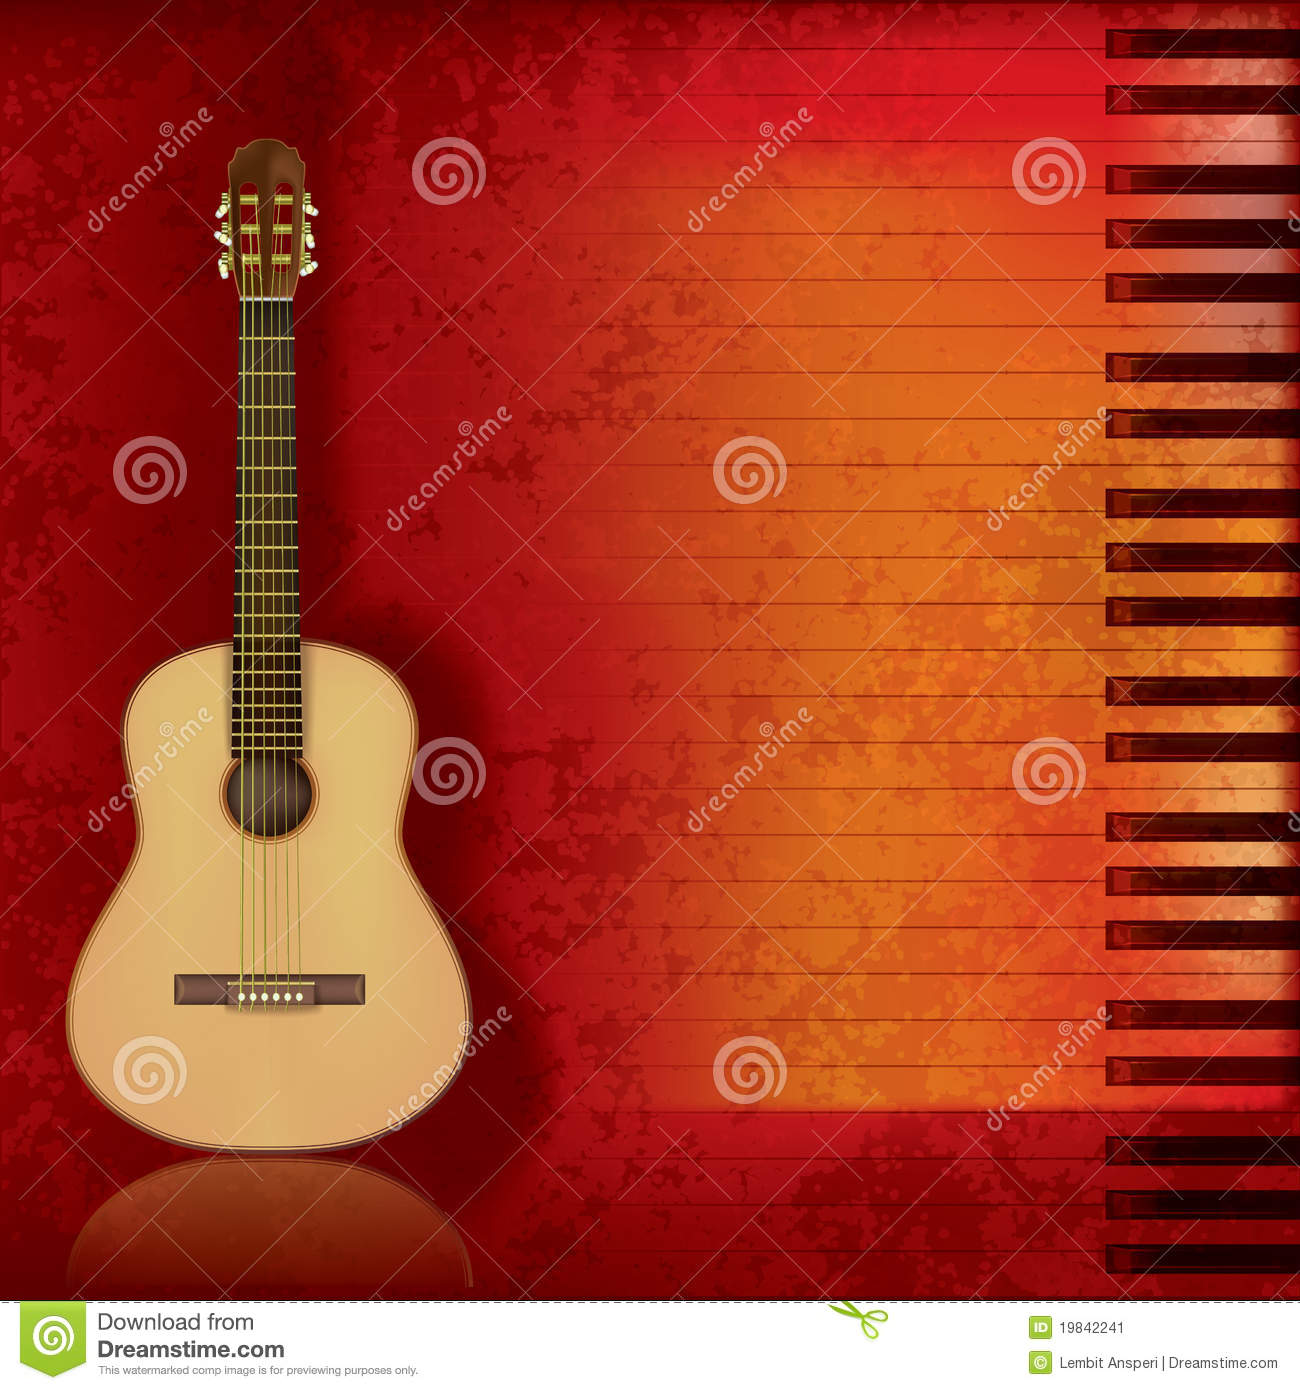 music time guitar abstract - photo #30